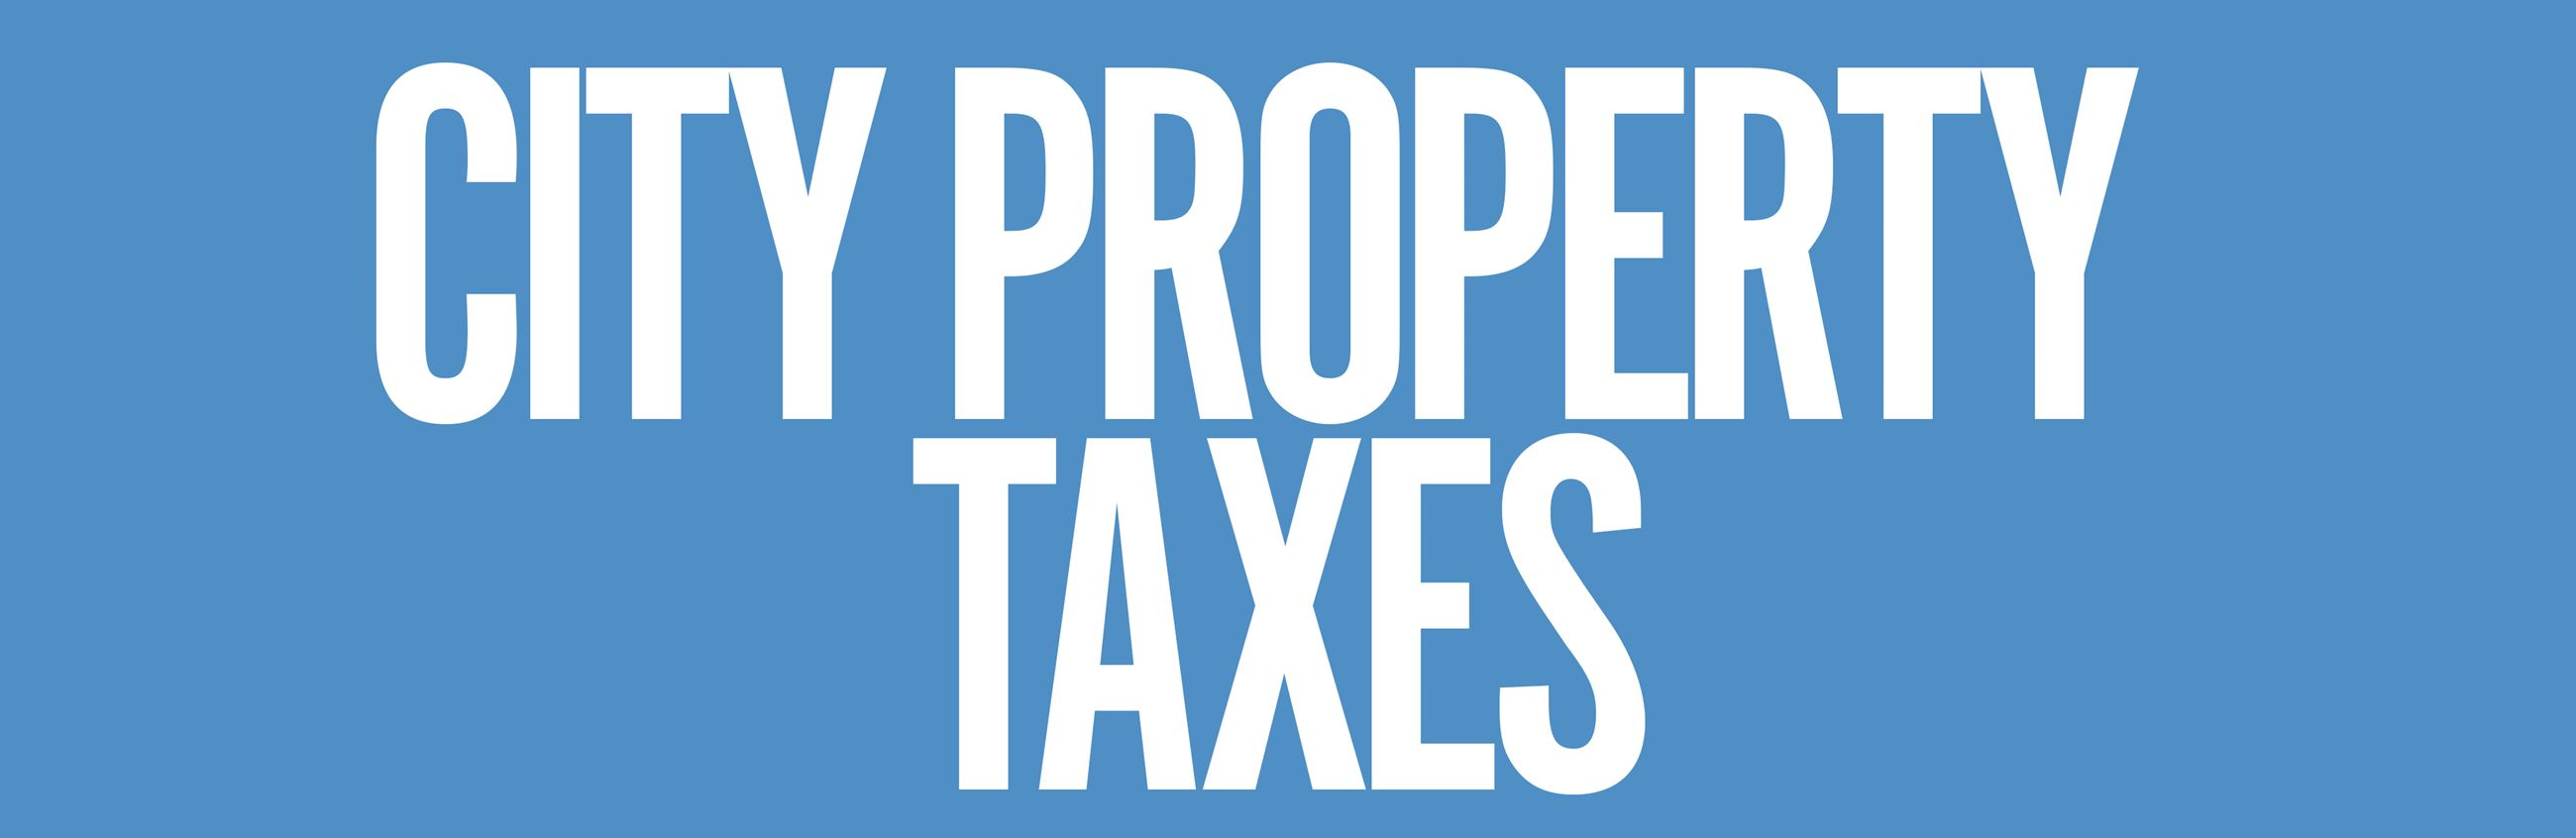 Pay City Property Taxes